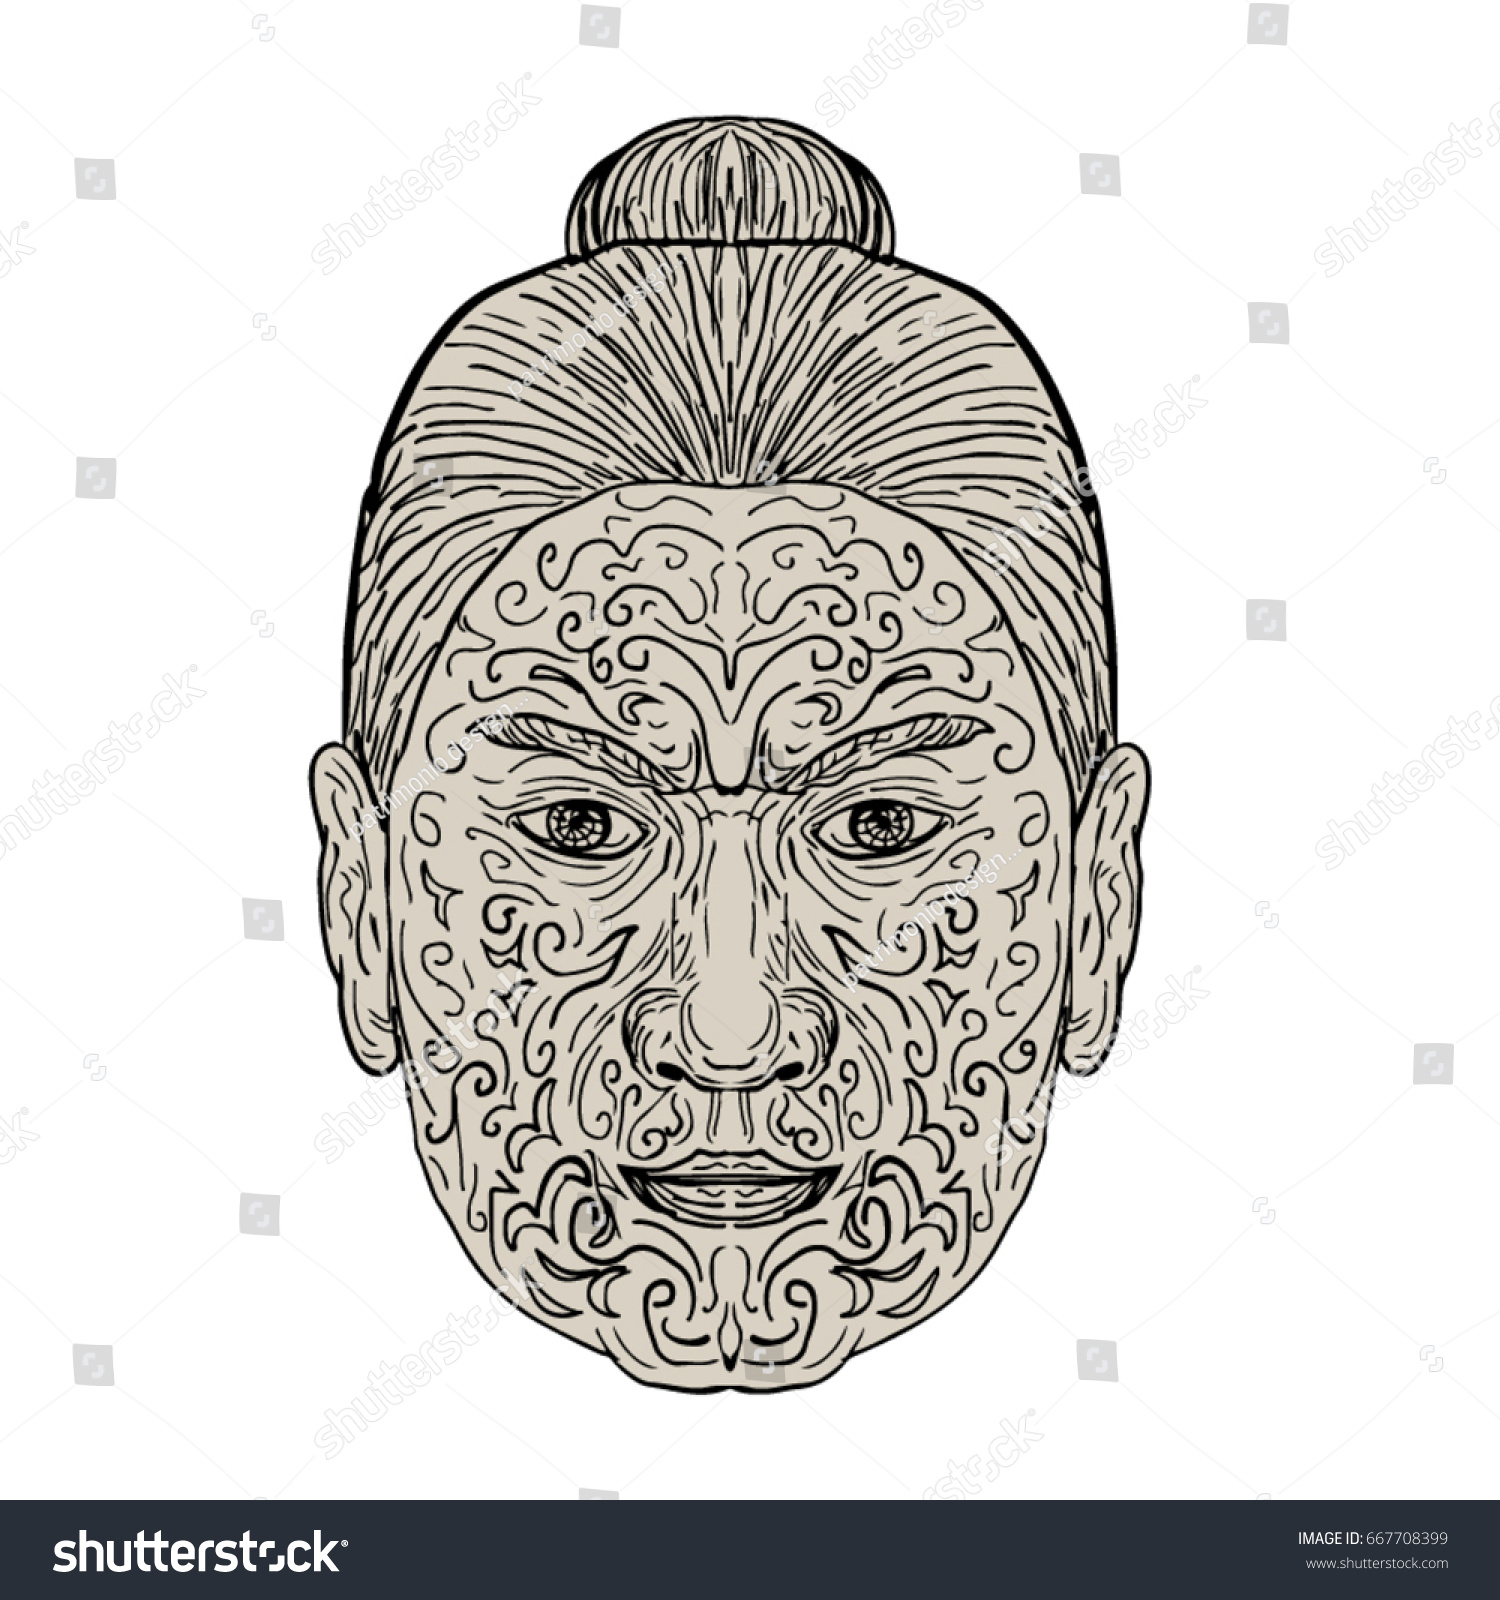 Illustration Of A Maori Face With Moko Facial Tattoo Done In Drawing Sketch  Style